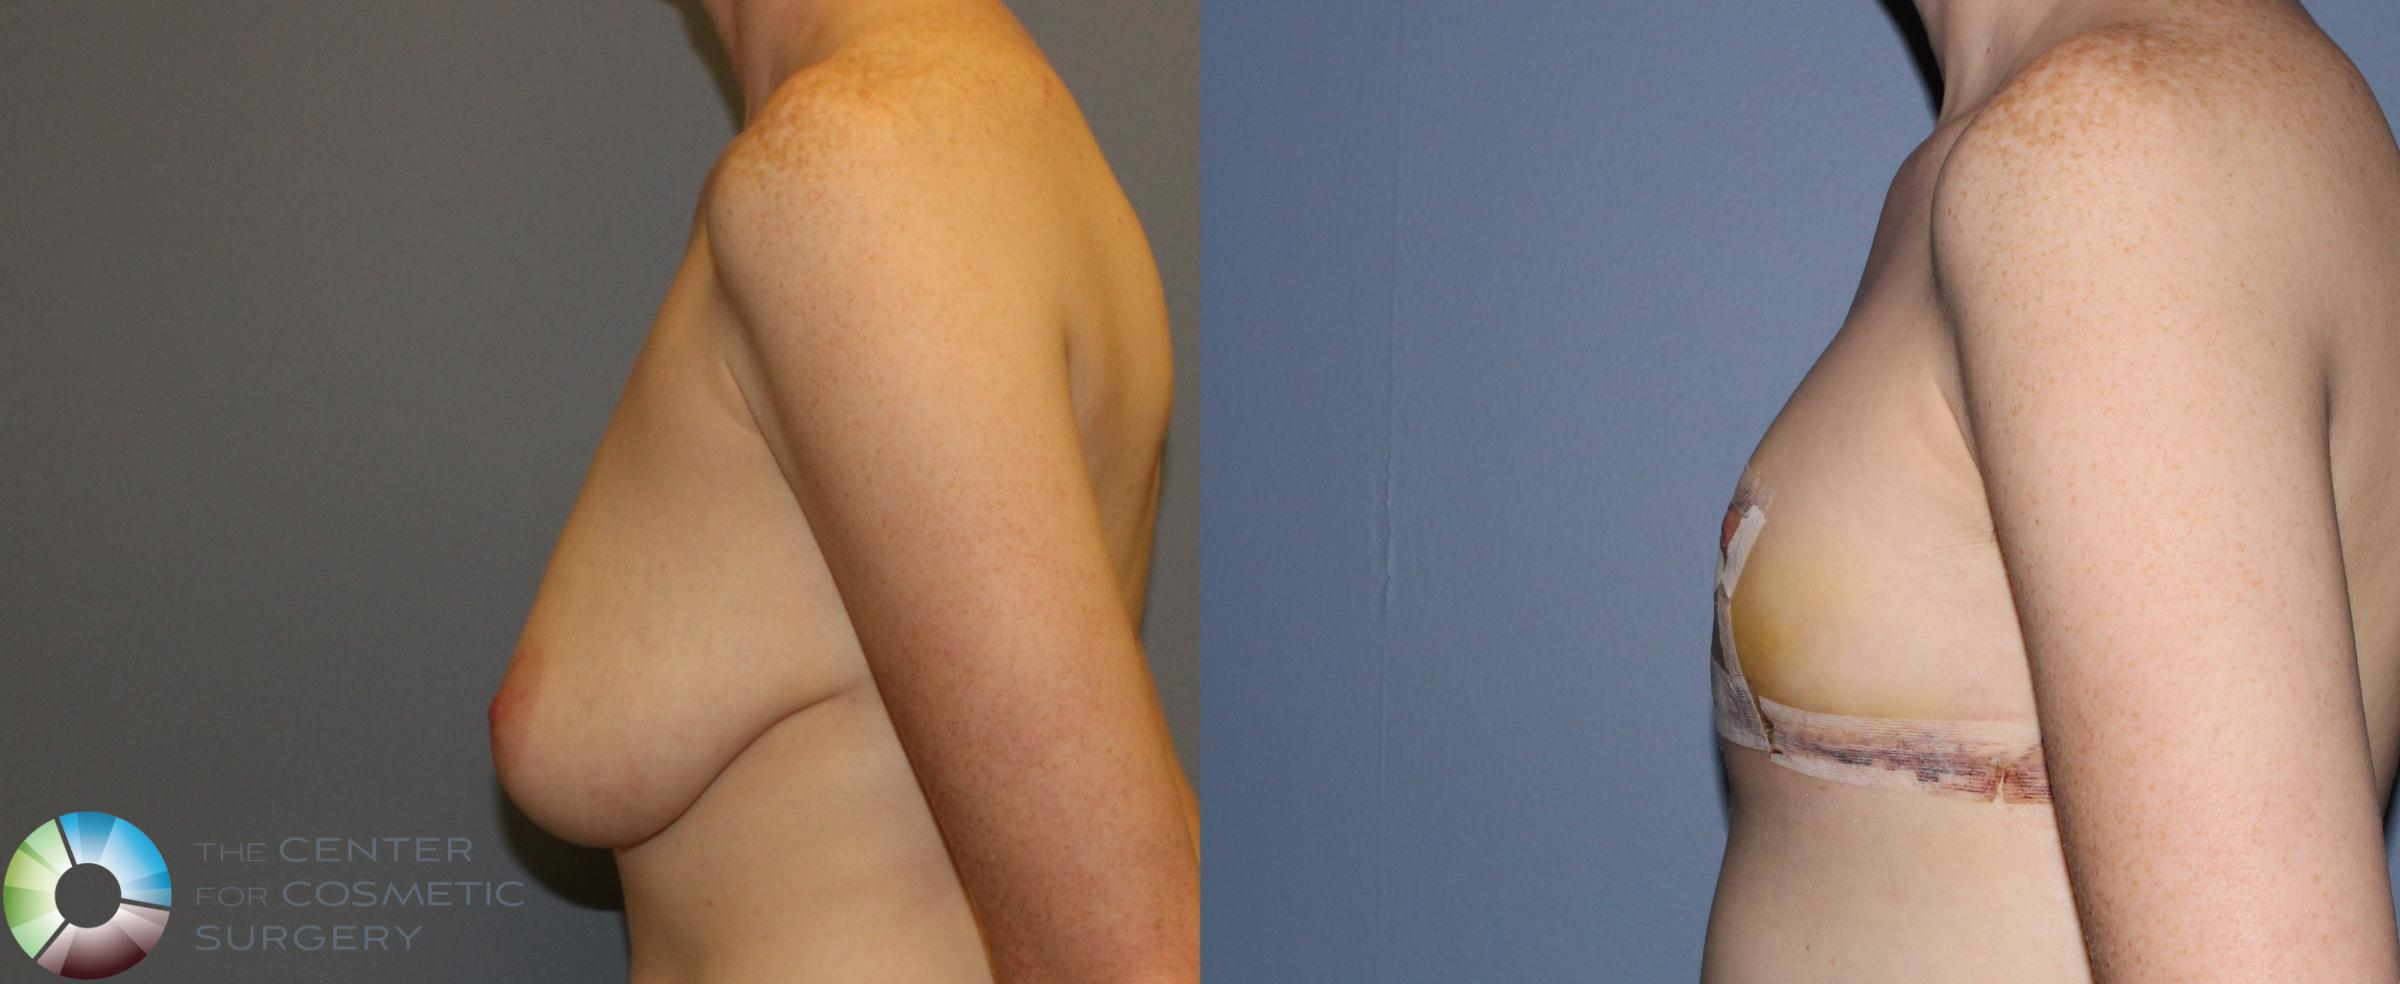 FTM Top Surgery/Chest Masculinization Case 11212 Before & After Left Side | Golden, CO | The Center for Cosmetic Surgery